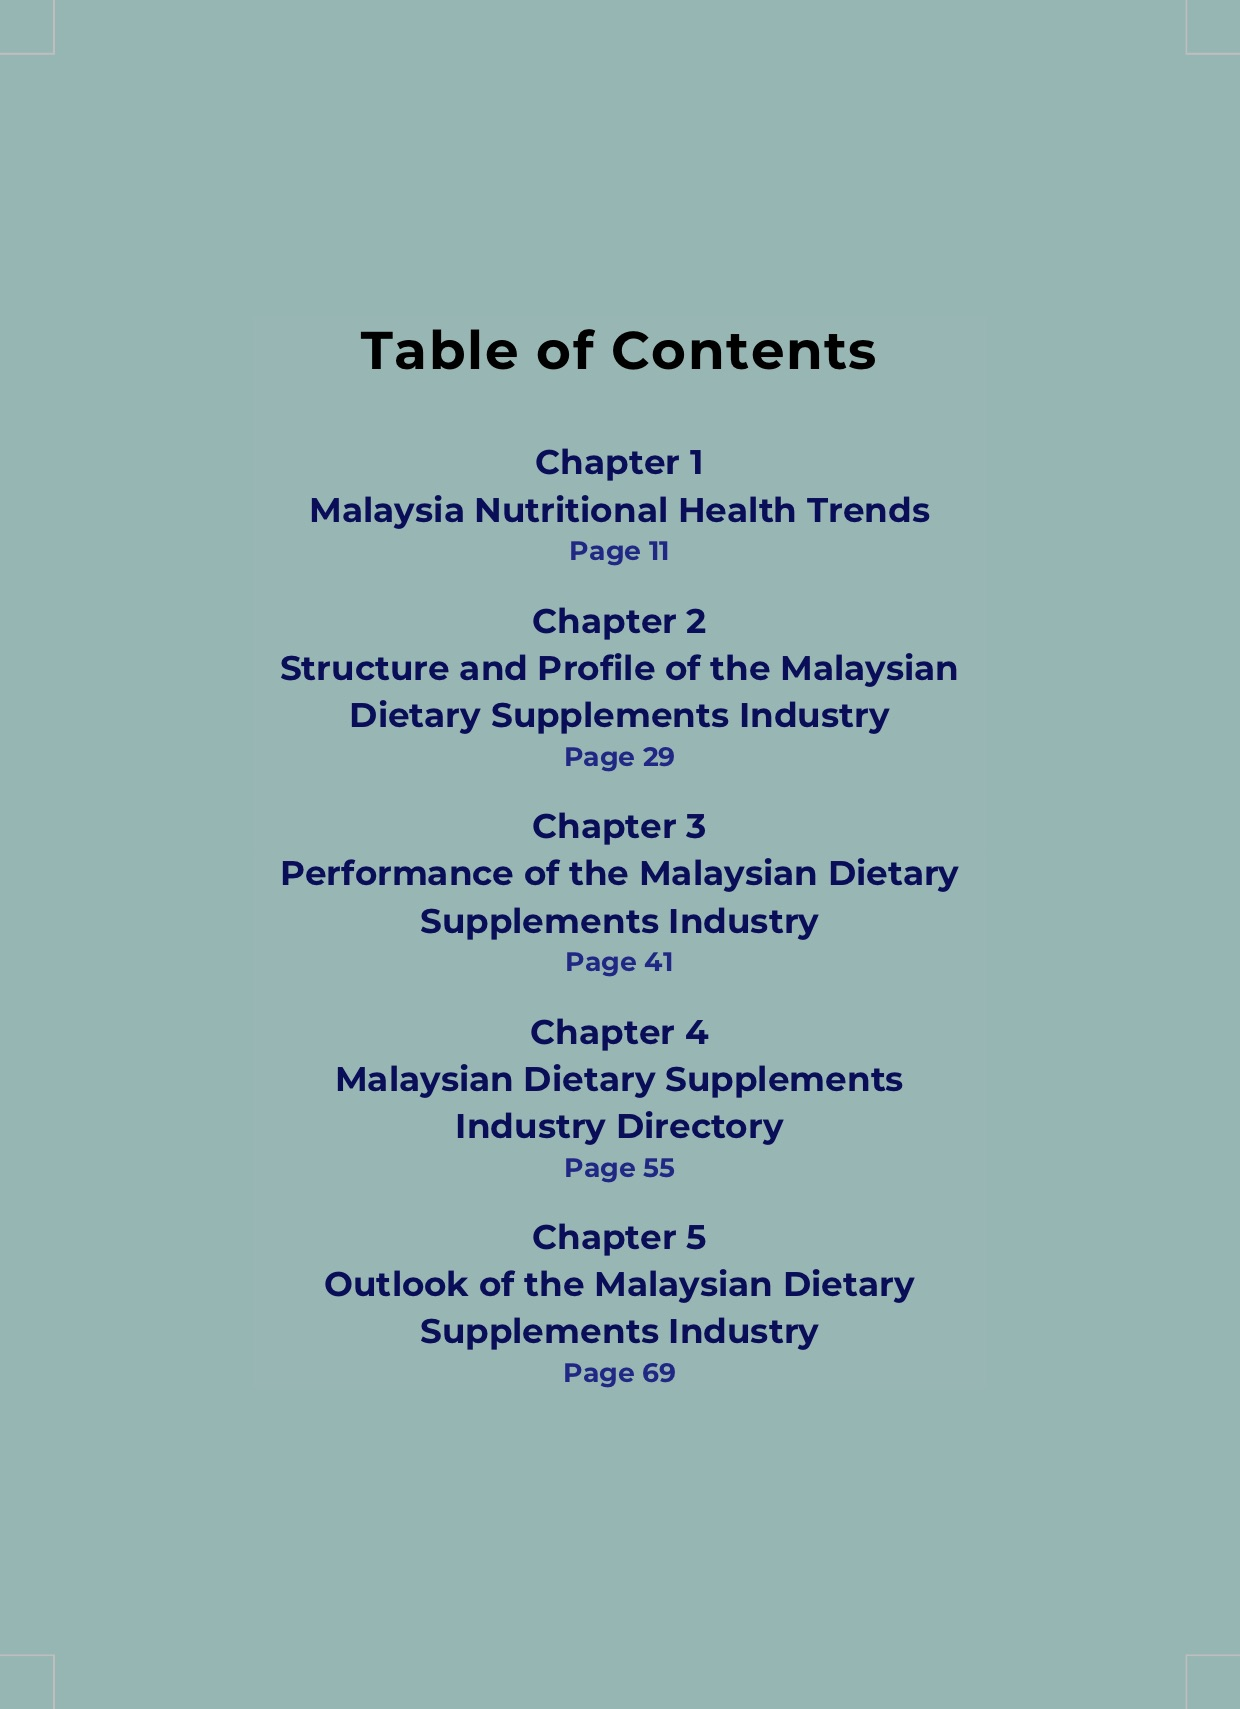 malaysian dietary supplements industry status outlook report 2019-2020